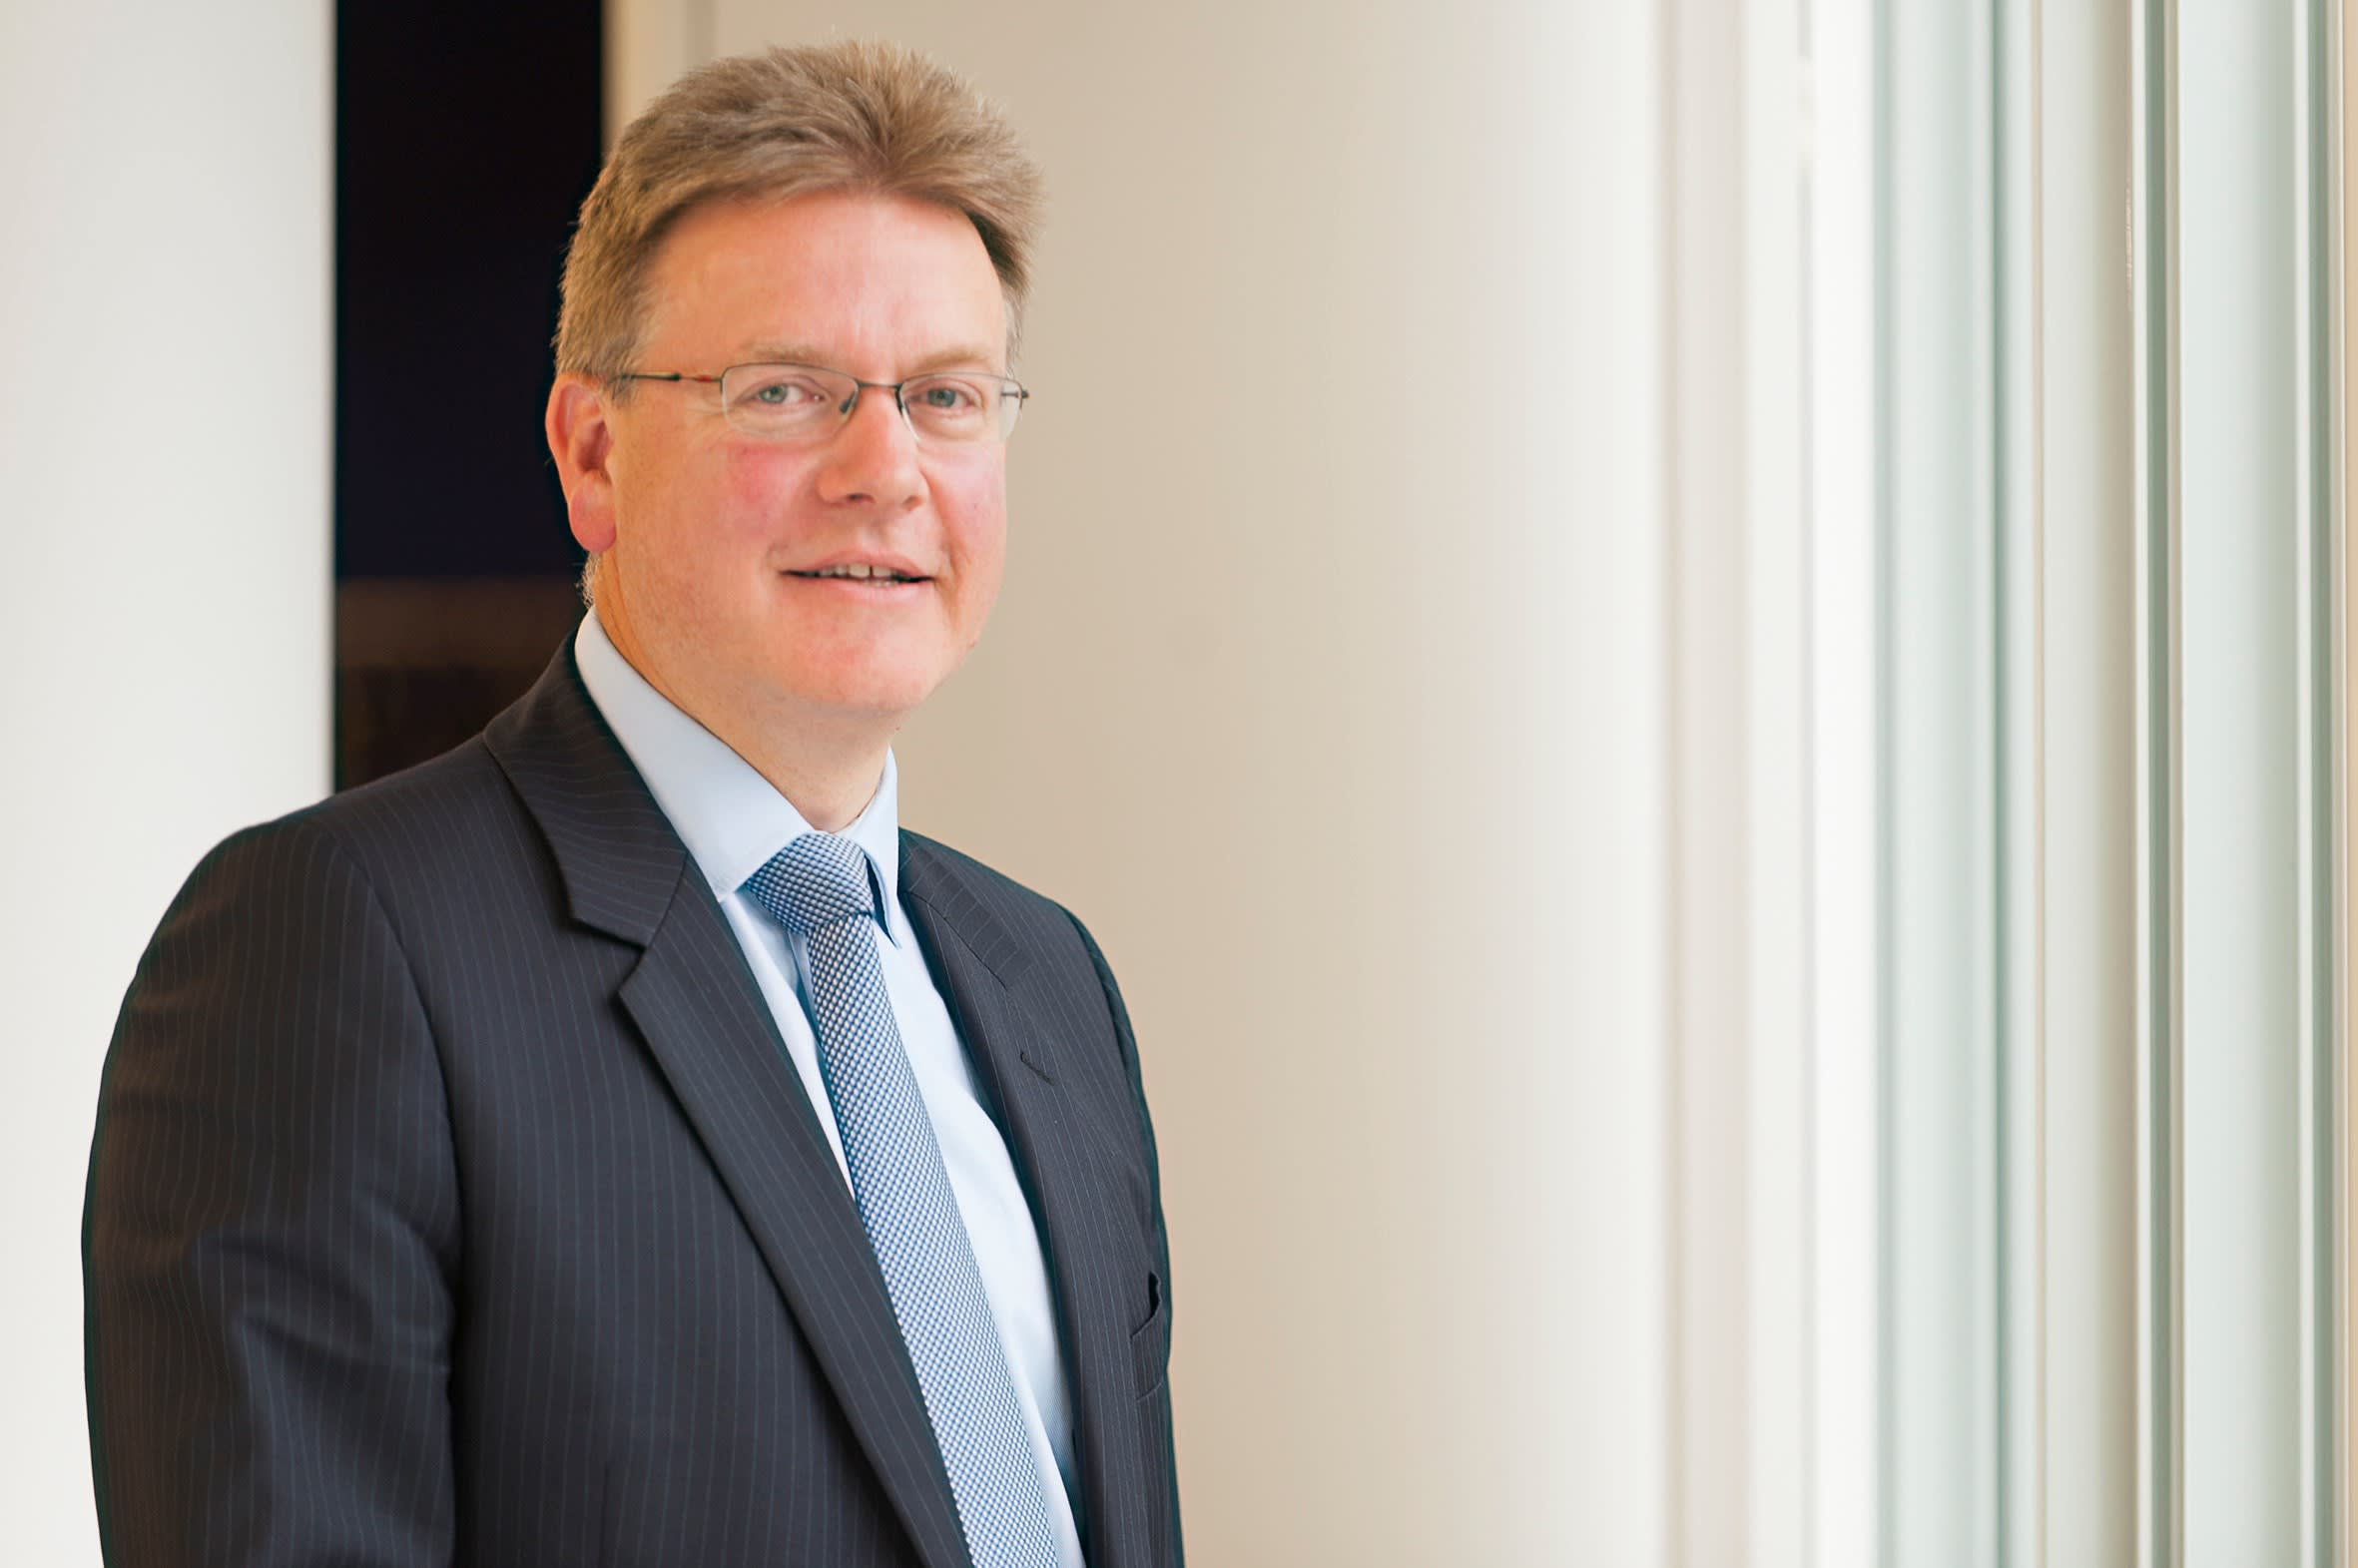 Legal & General appoints distribution director